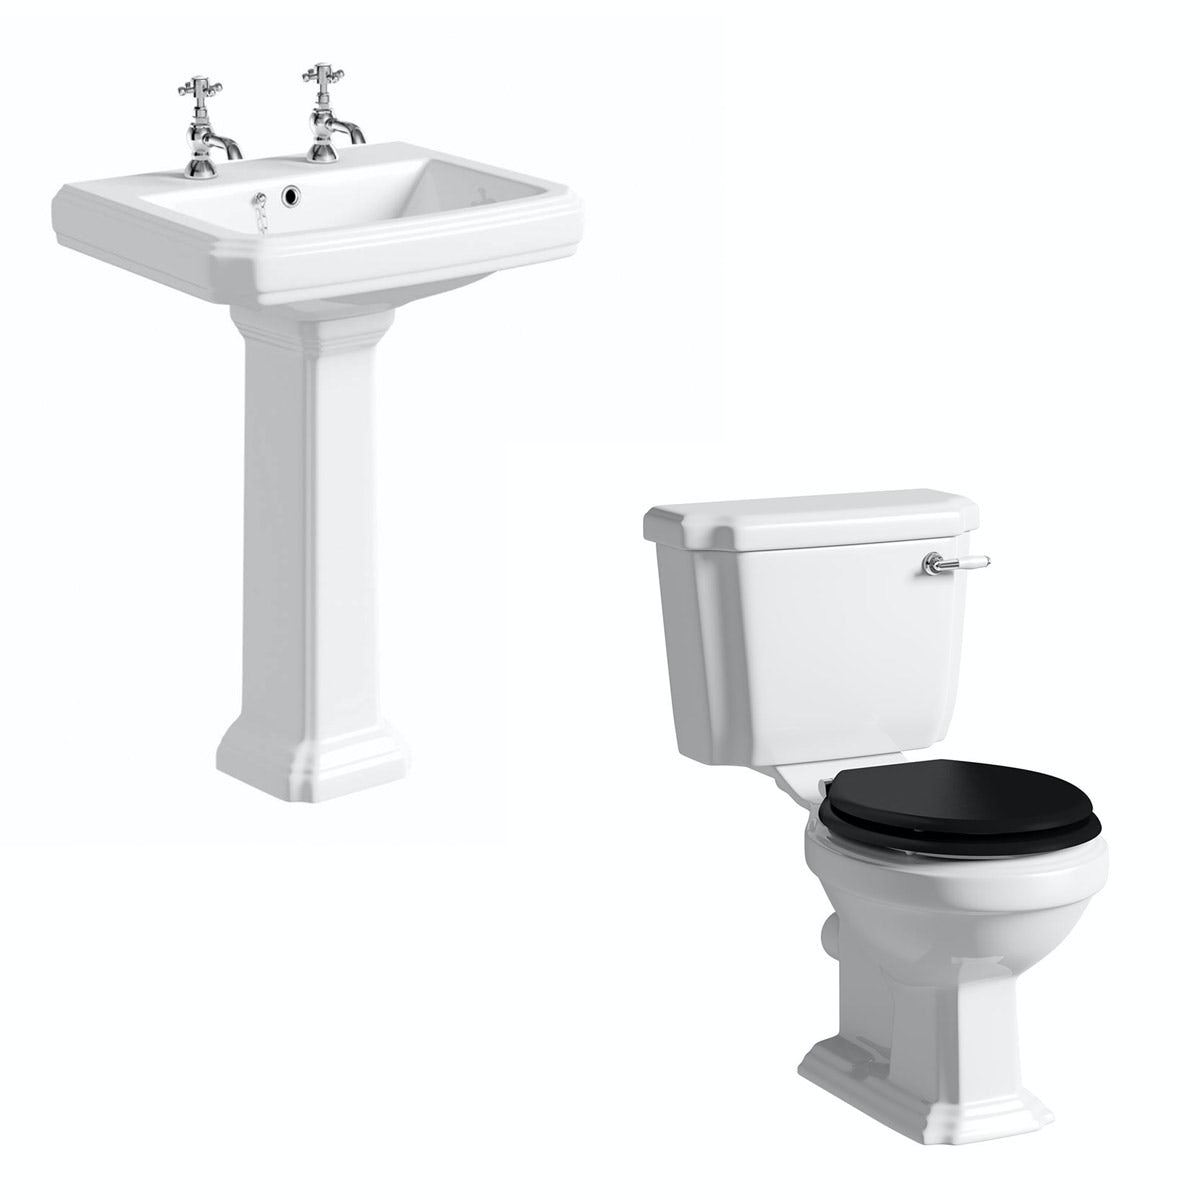 The Bath Co. Dulwich cloakroom suite with black seat and full pedestal basin 615mm